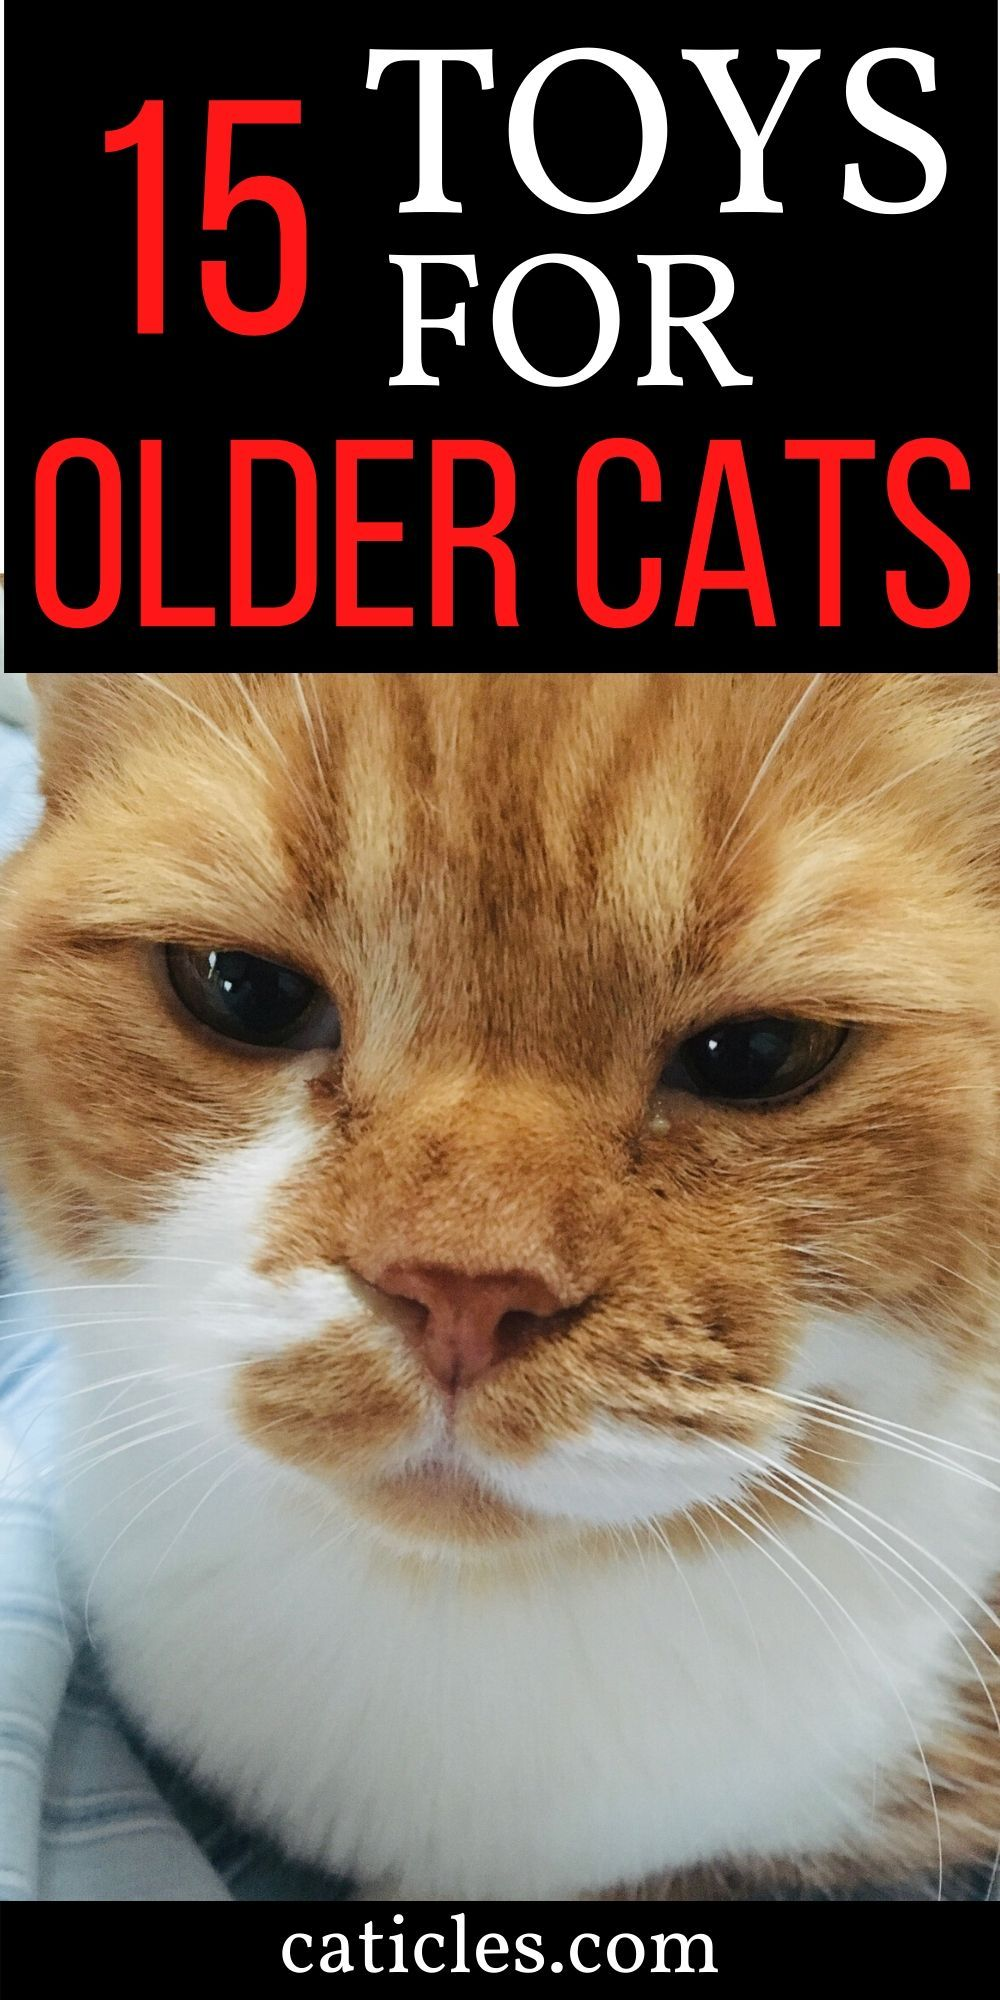 16 Gifts For Older Cats That Make Them Feel Young Again Caticles In 2020 Older Cats Senior Cat Care Best Interactive Cat Toys